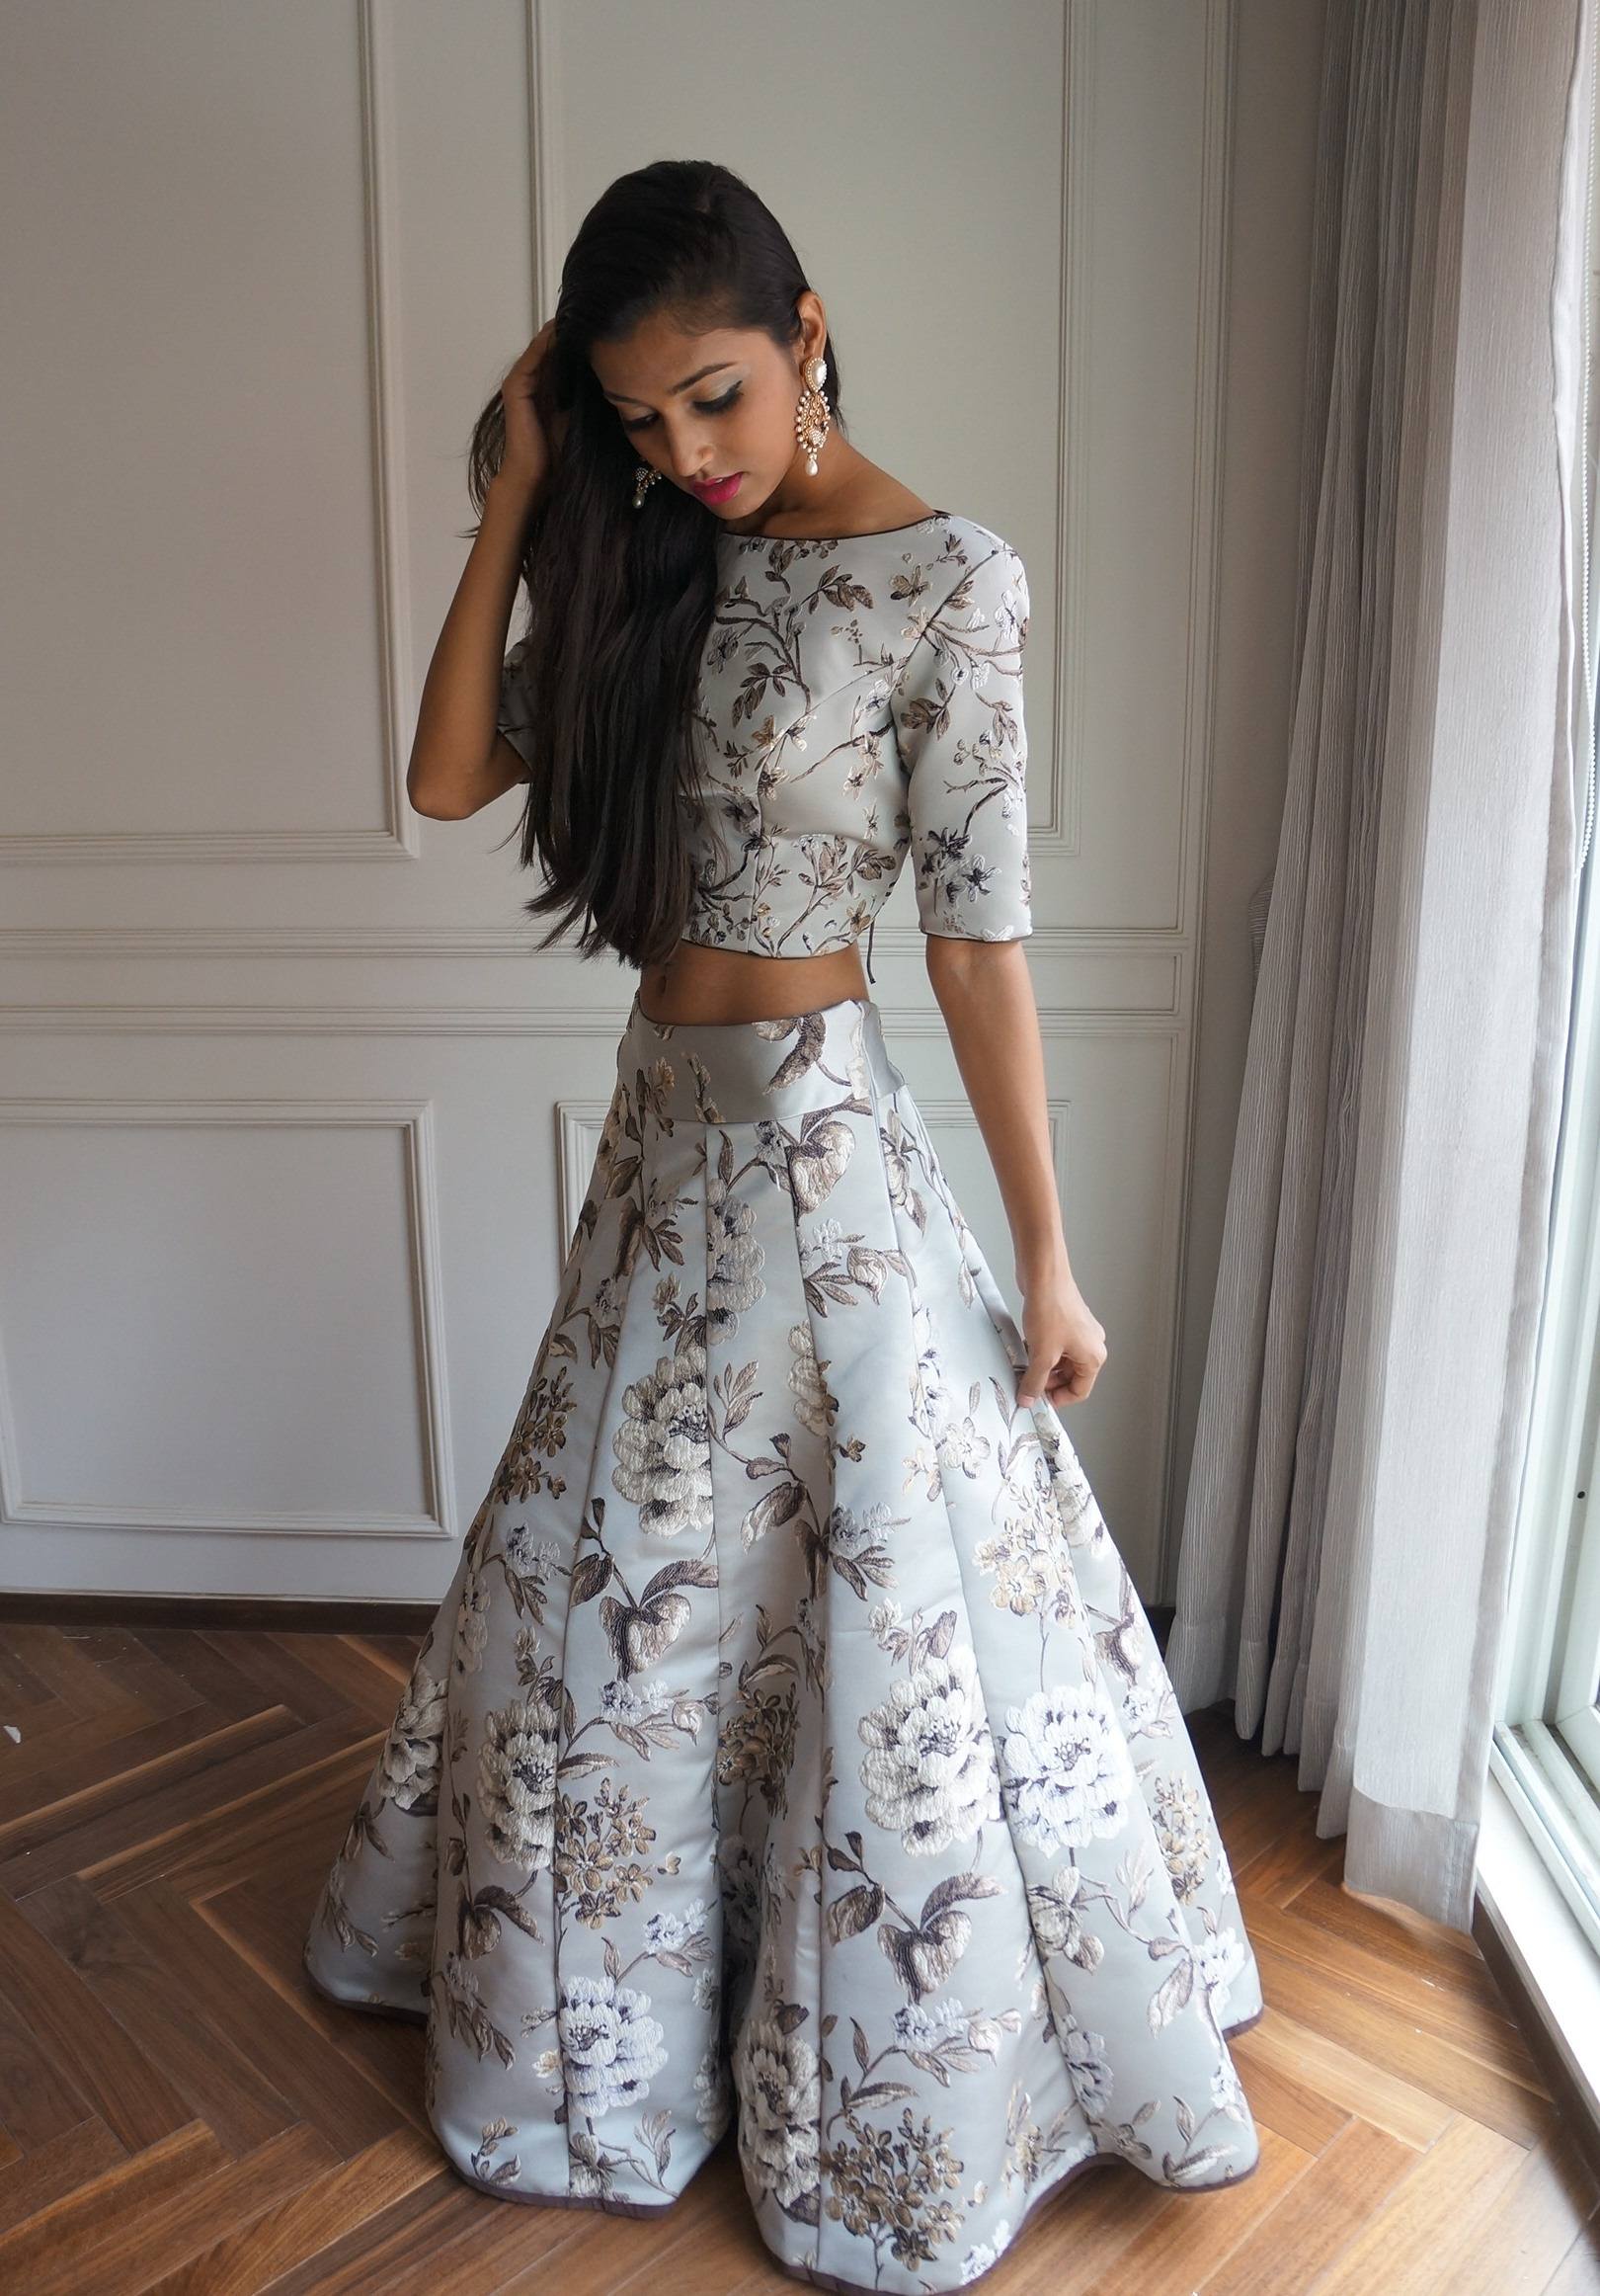 wedding dresses - vintage garden lehenga for rent